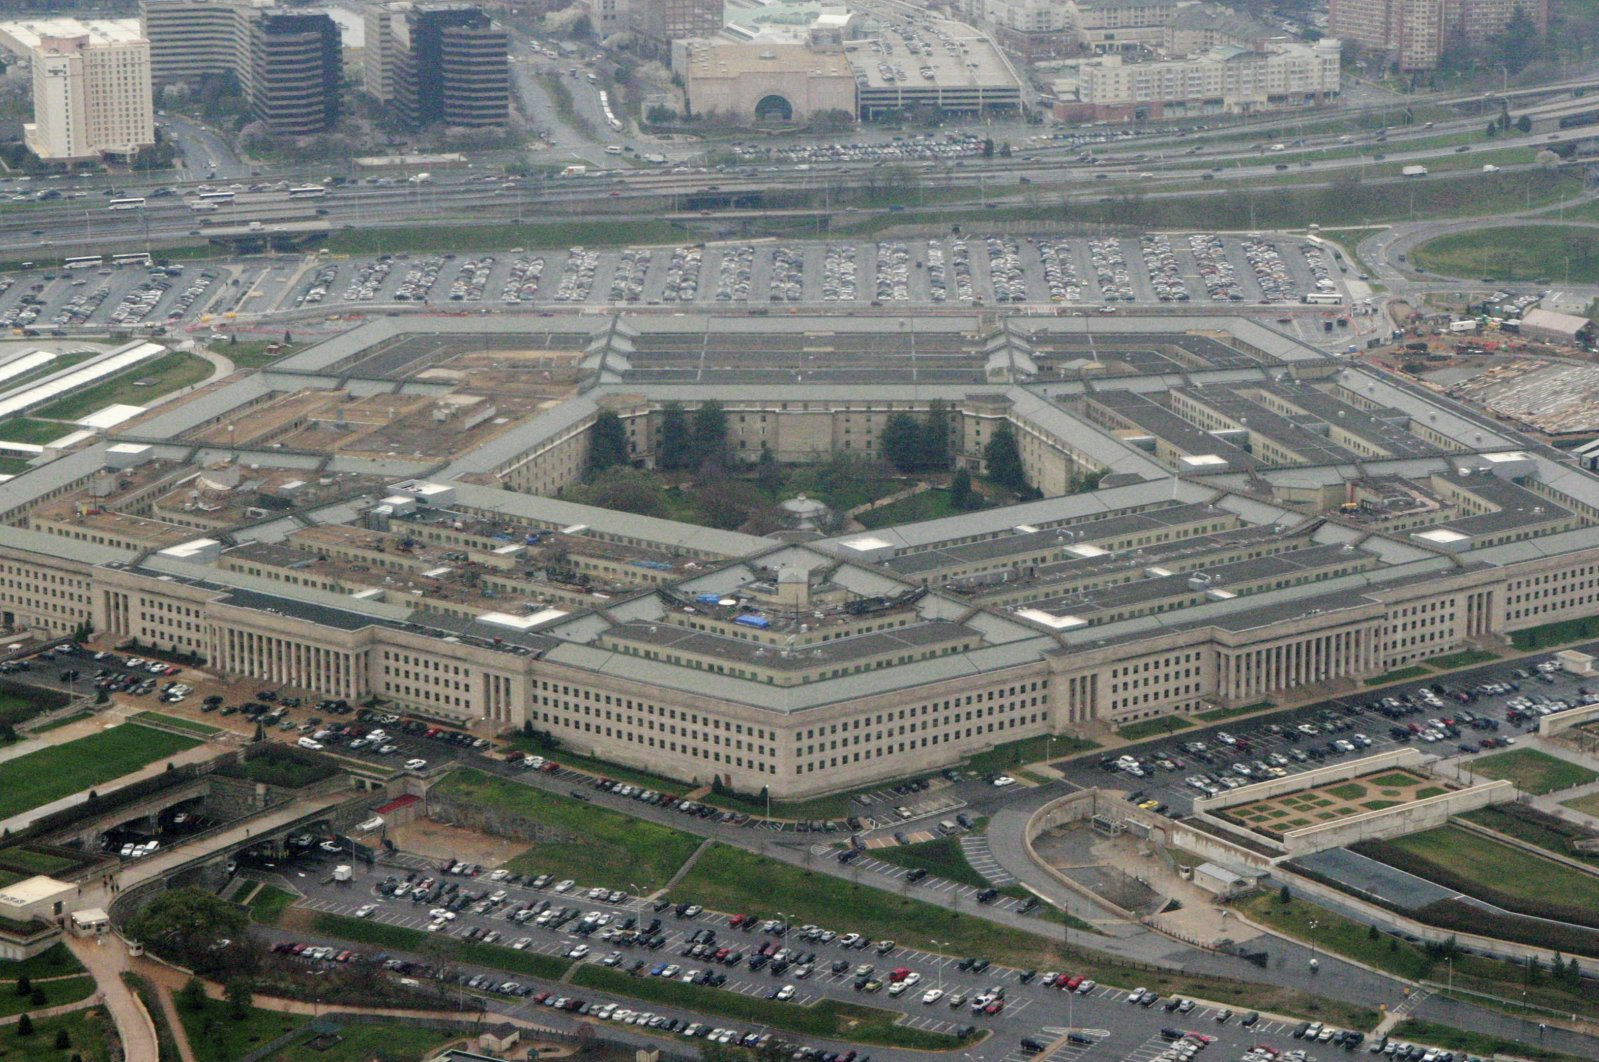 This March 27, 2008 file photo shows the Pentagon in Washington. (AP Photo)